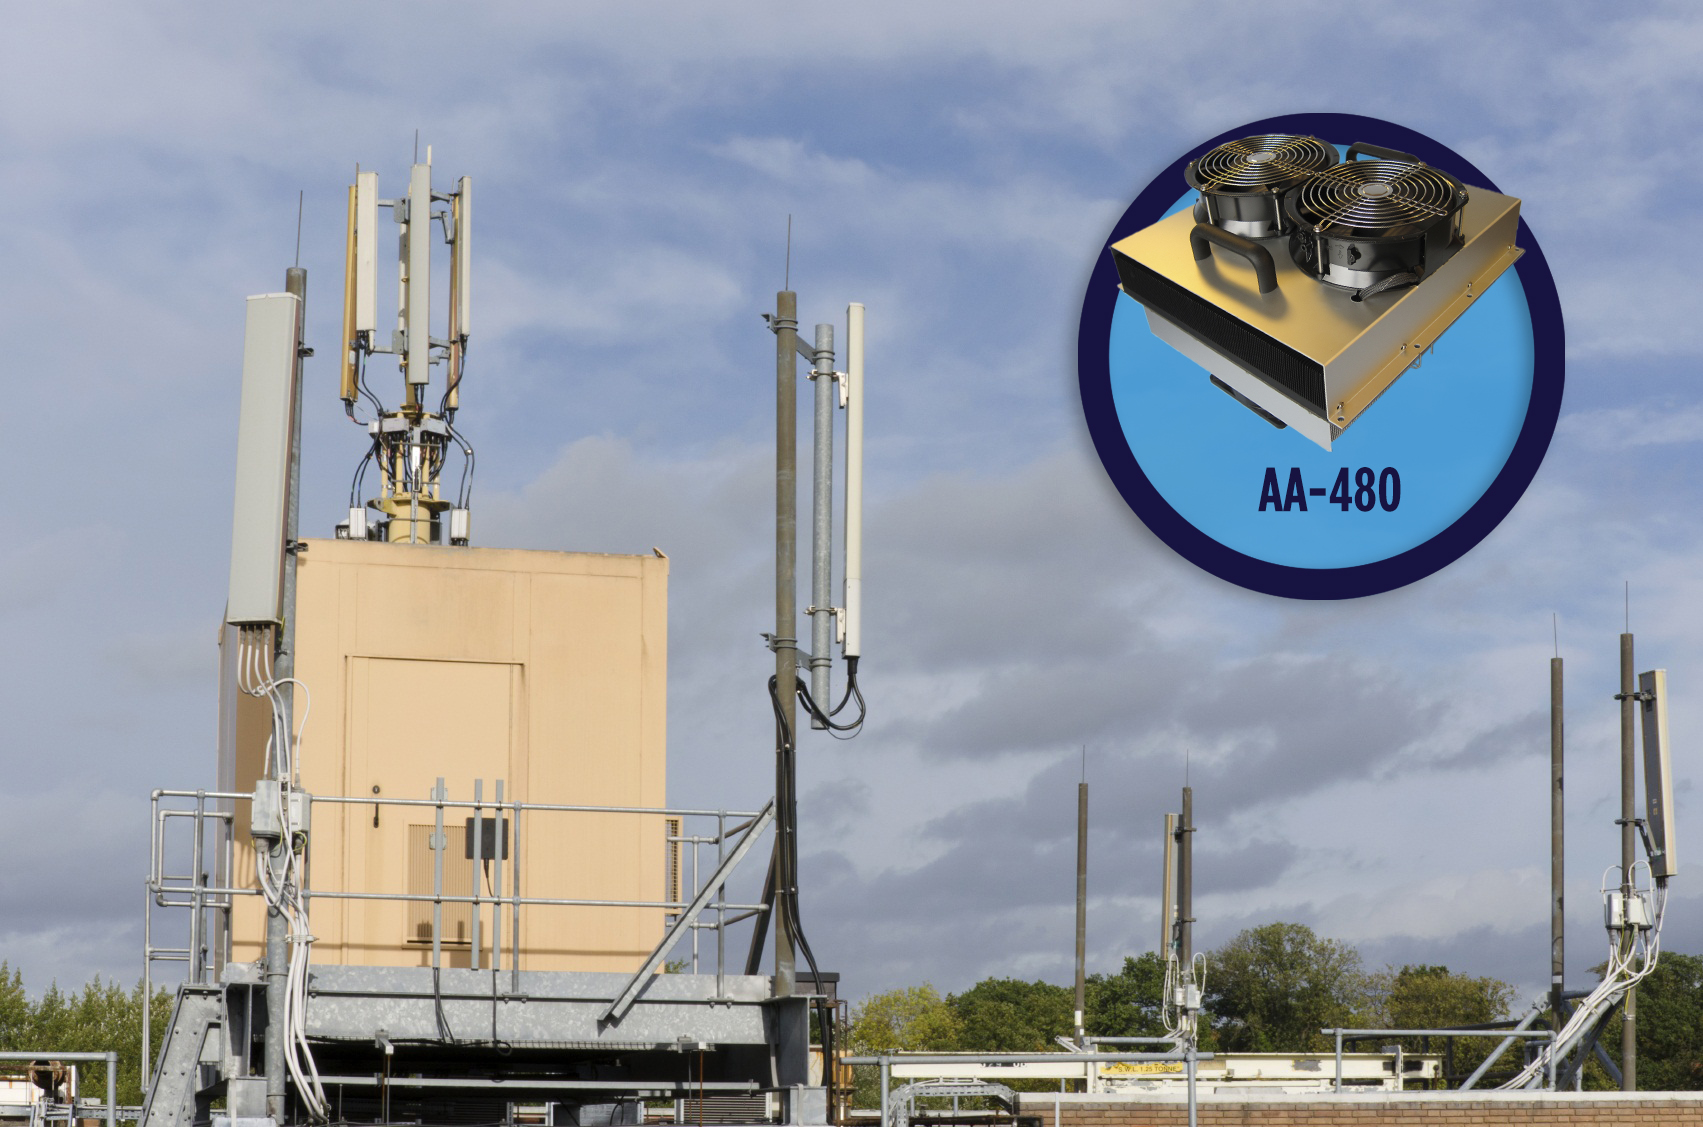 Laird's New AA-480 Cooler Improves Reliability of Cellular Coverage While Reducing Installation and Maintenance Costs